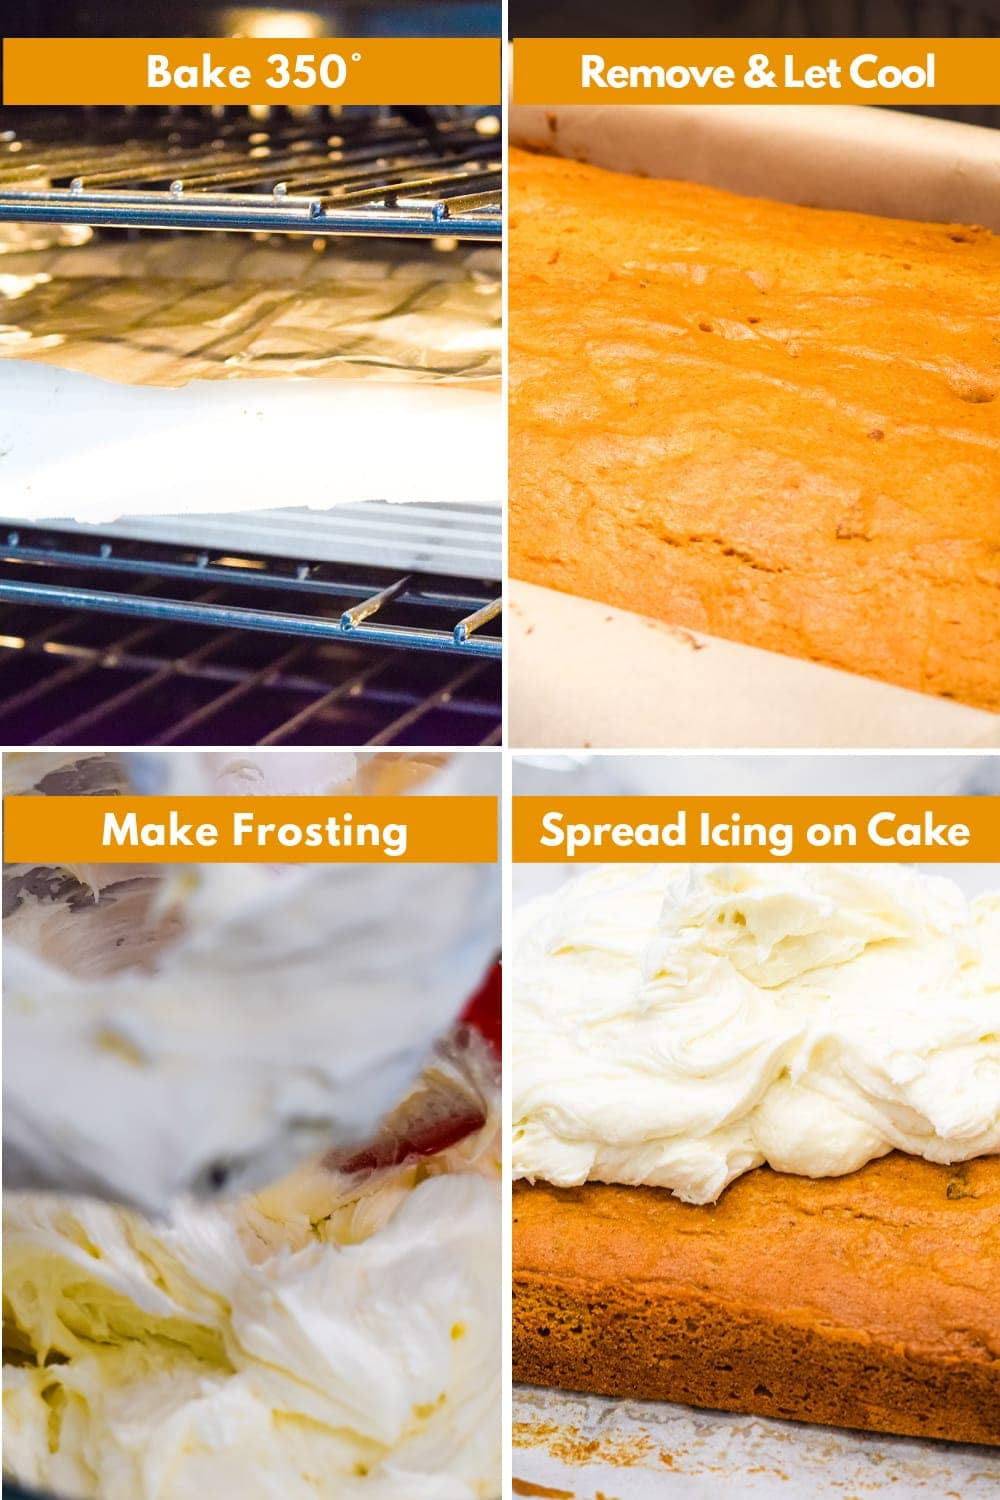 Instruction images for baking and frosting cake.